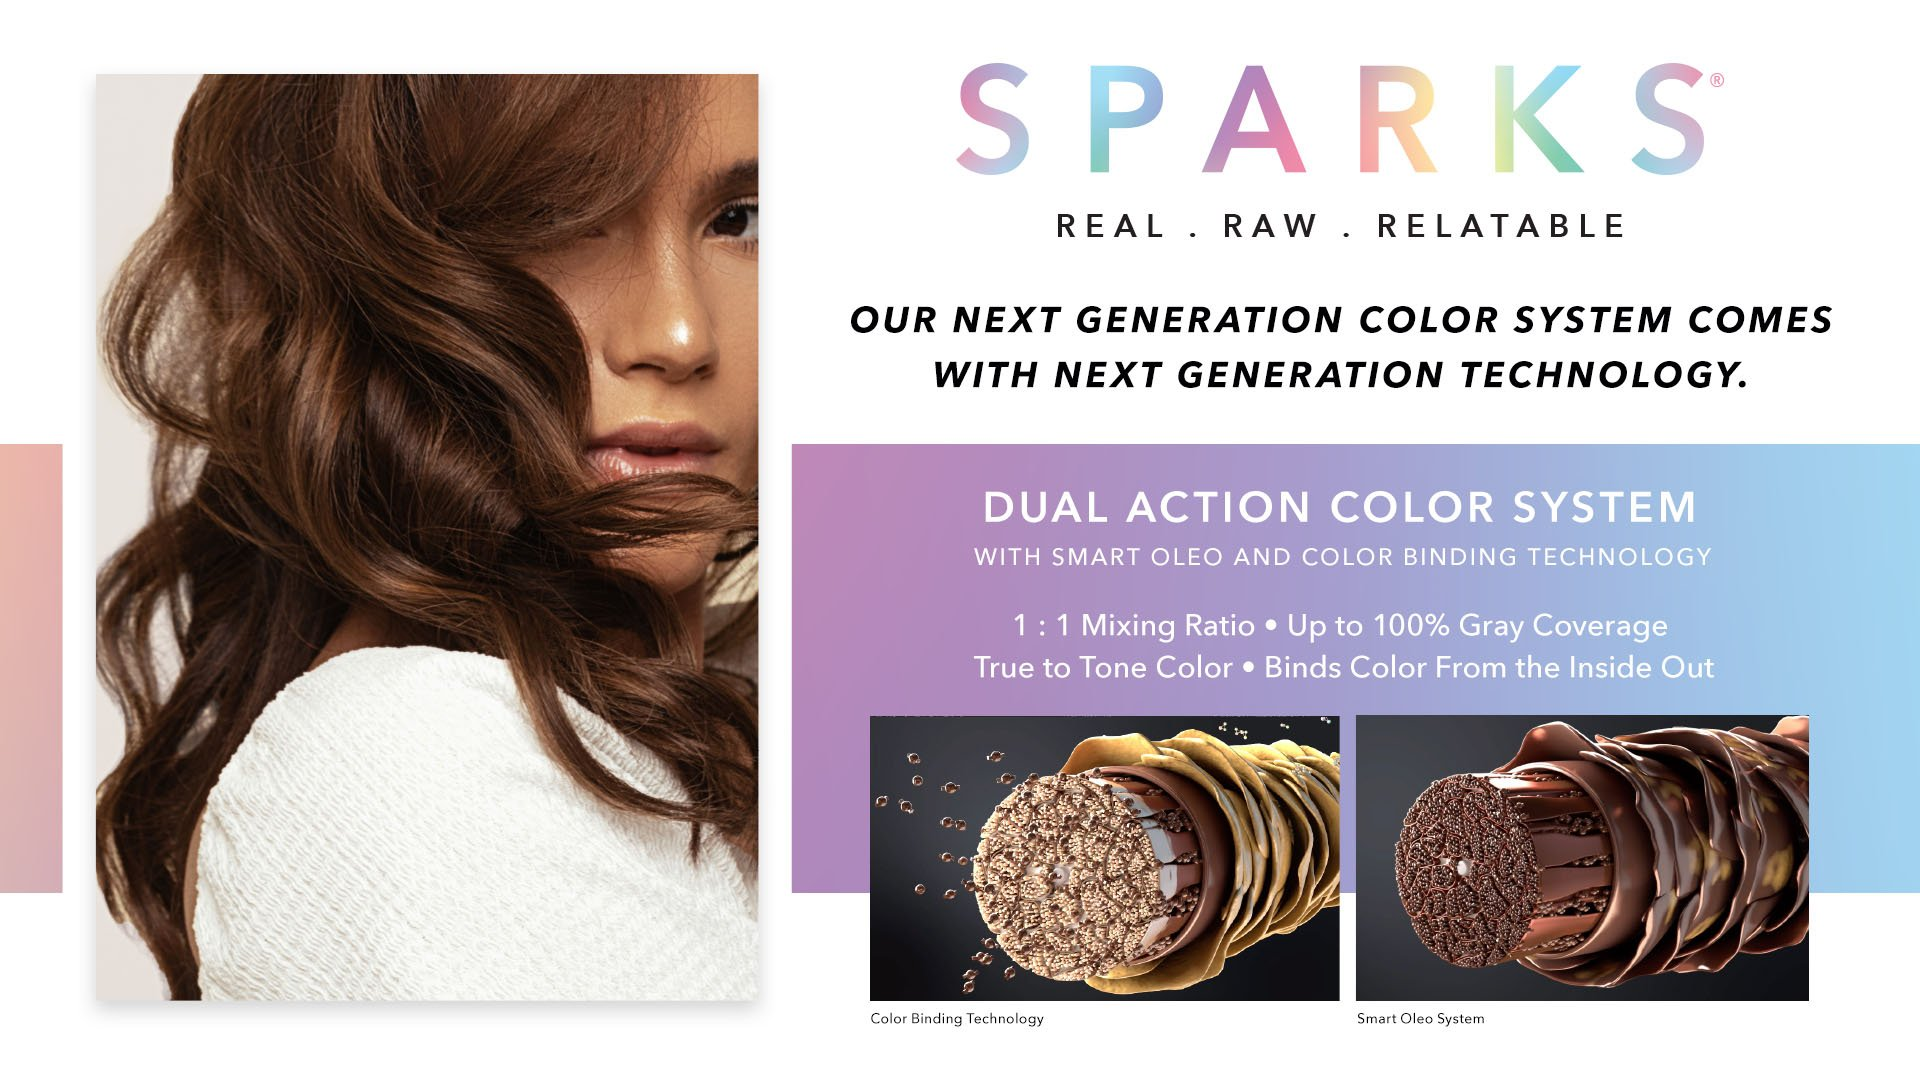 Quote reads, dual action color system with smart oleo and color binding technology. 1:1 mixing ratio, up to 100% gray coverage, true to tone color, binds color from the inside out. Technical visuals of hair.